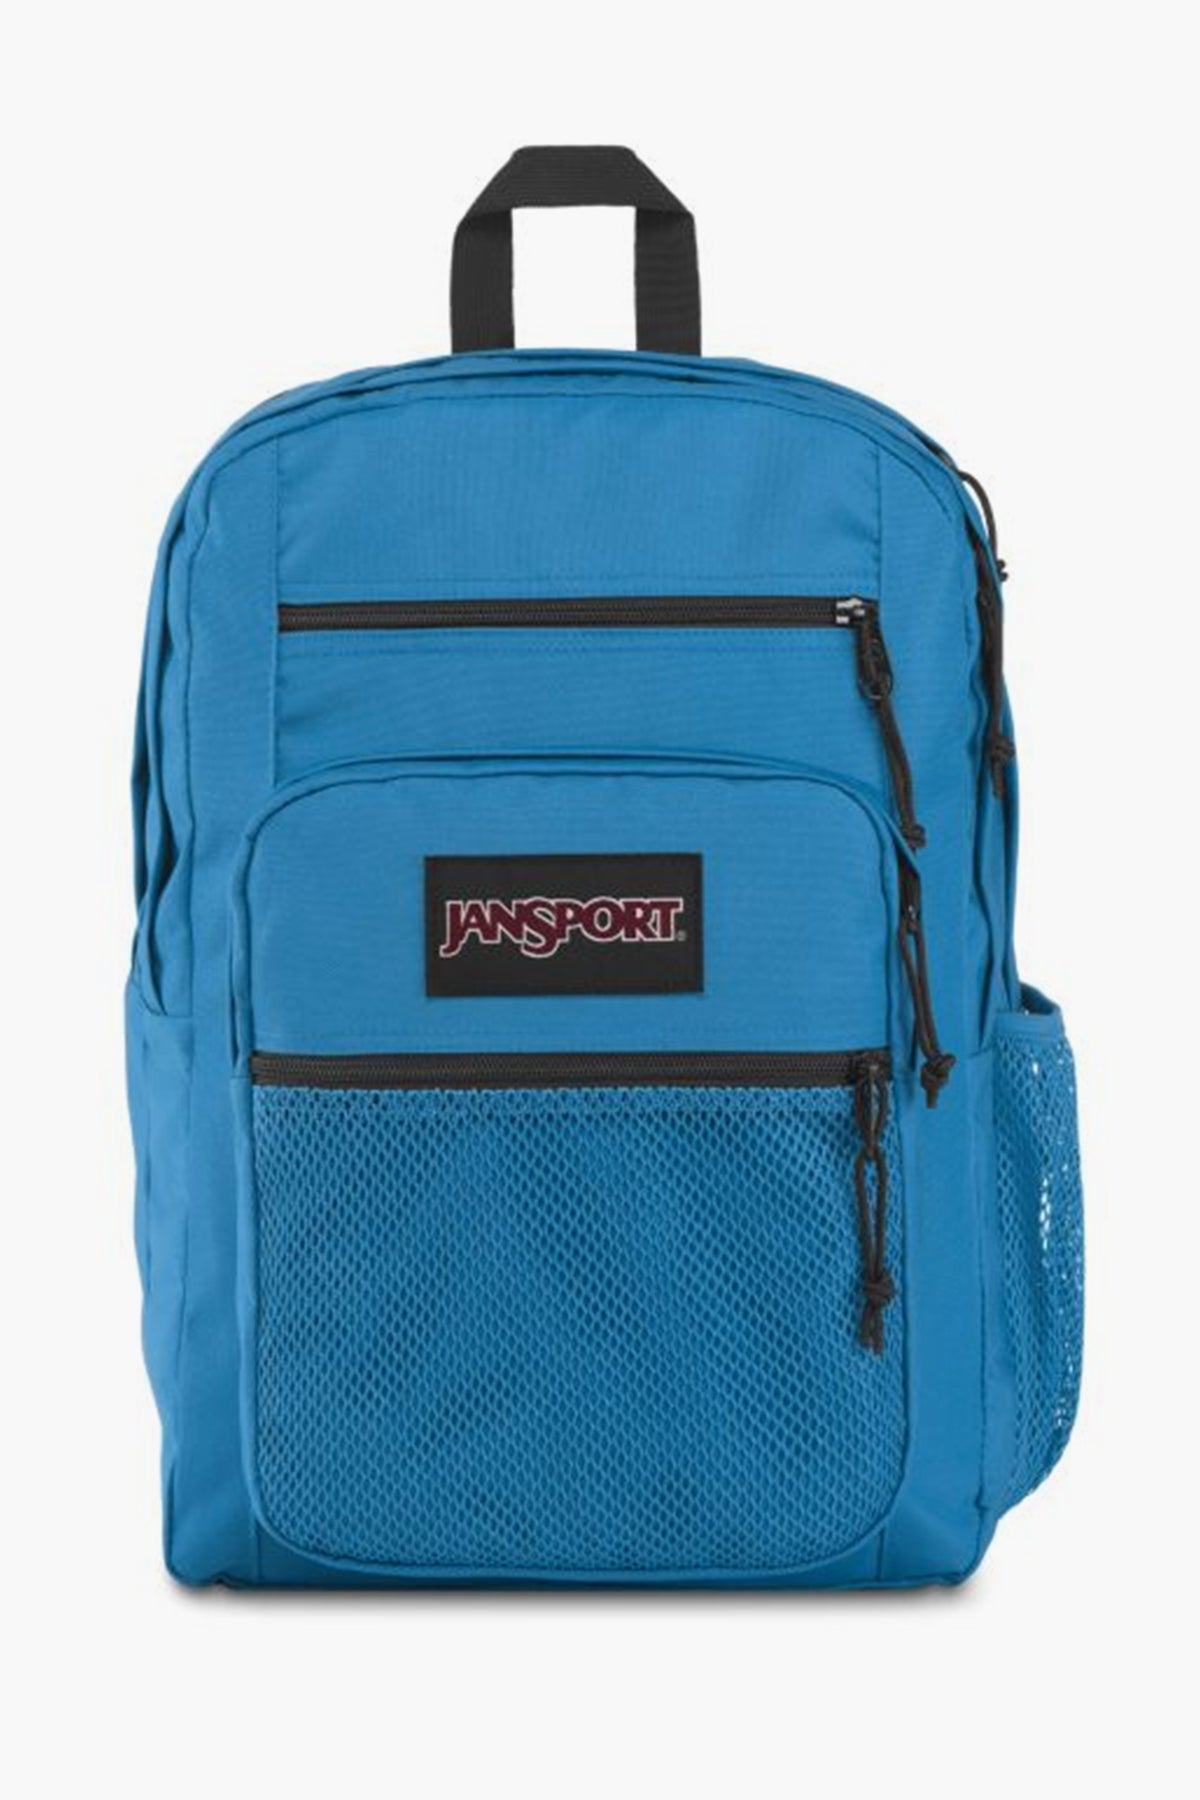 JanSport Big Campus Backpack - Blue Jay